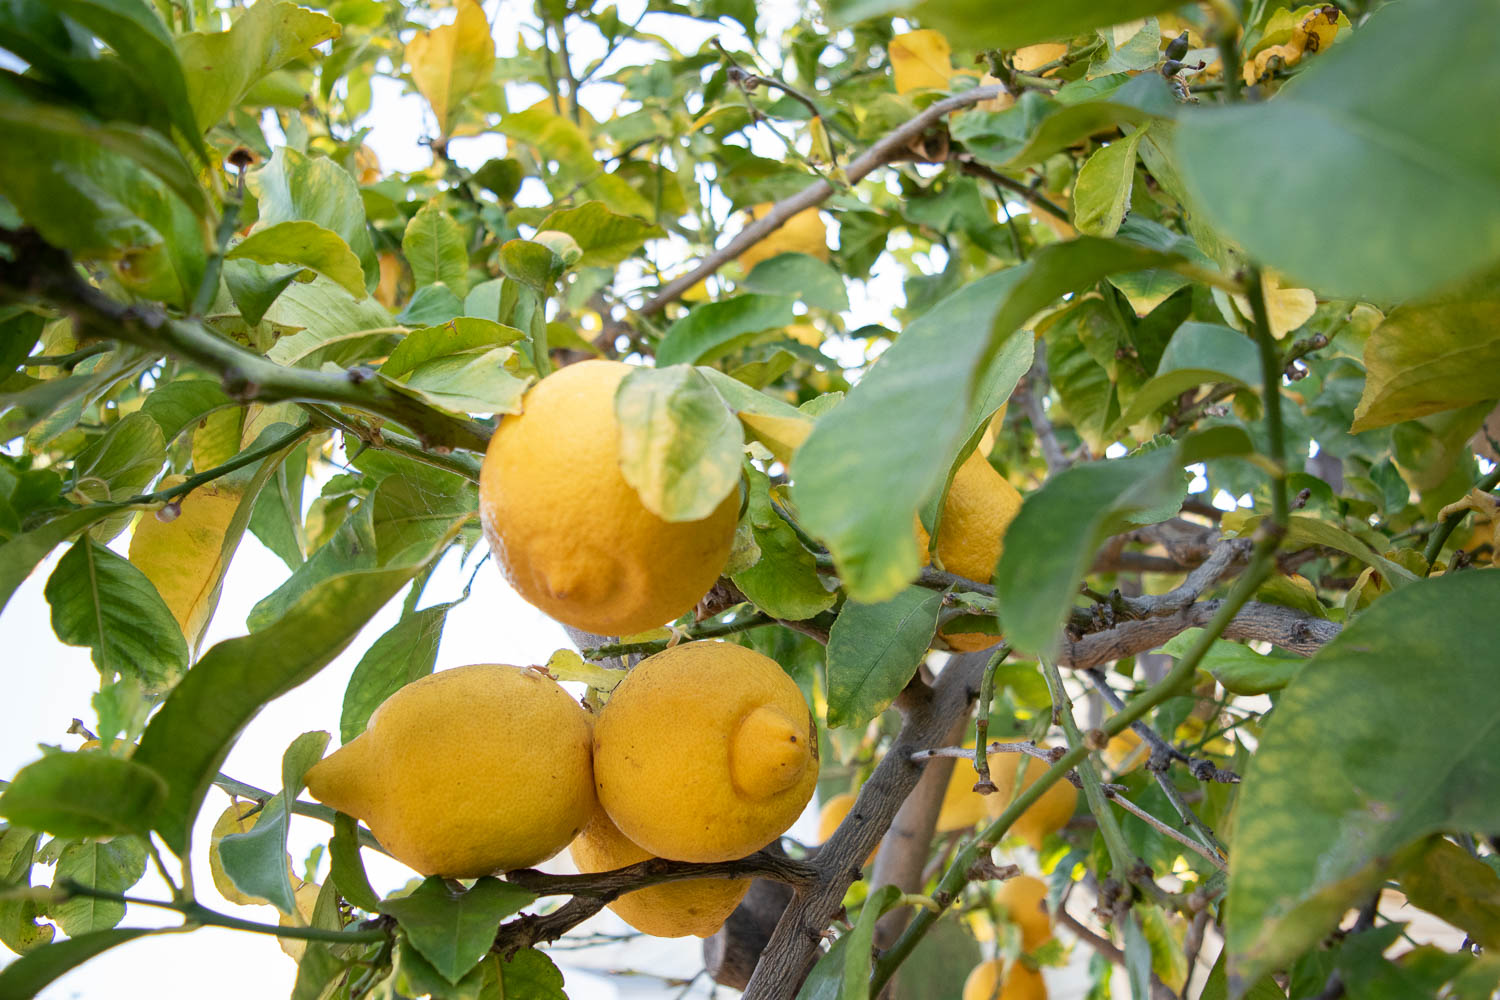 Lemon Tree - This tree was here before we bought the house and this citrus lover wouldn't dare get rid of a mature lemon tree. It yields so many fruit that I spend an entire day picking, sorting, cutting, juicing, straining, and freezing them. I'm not complaining though because I have lemon juice for years stored away in my freezer.